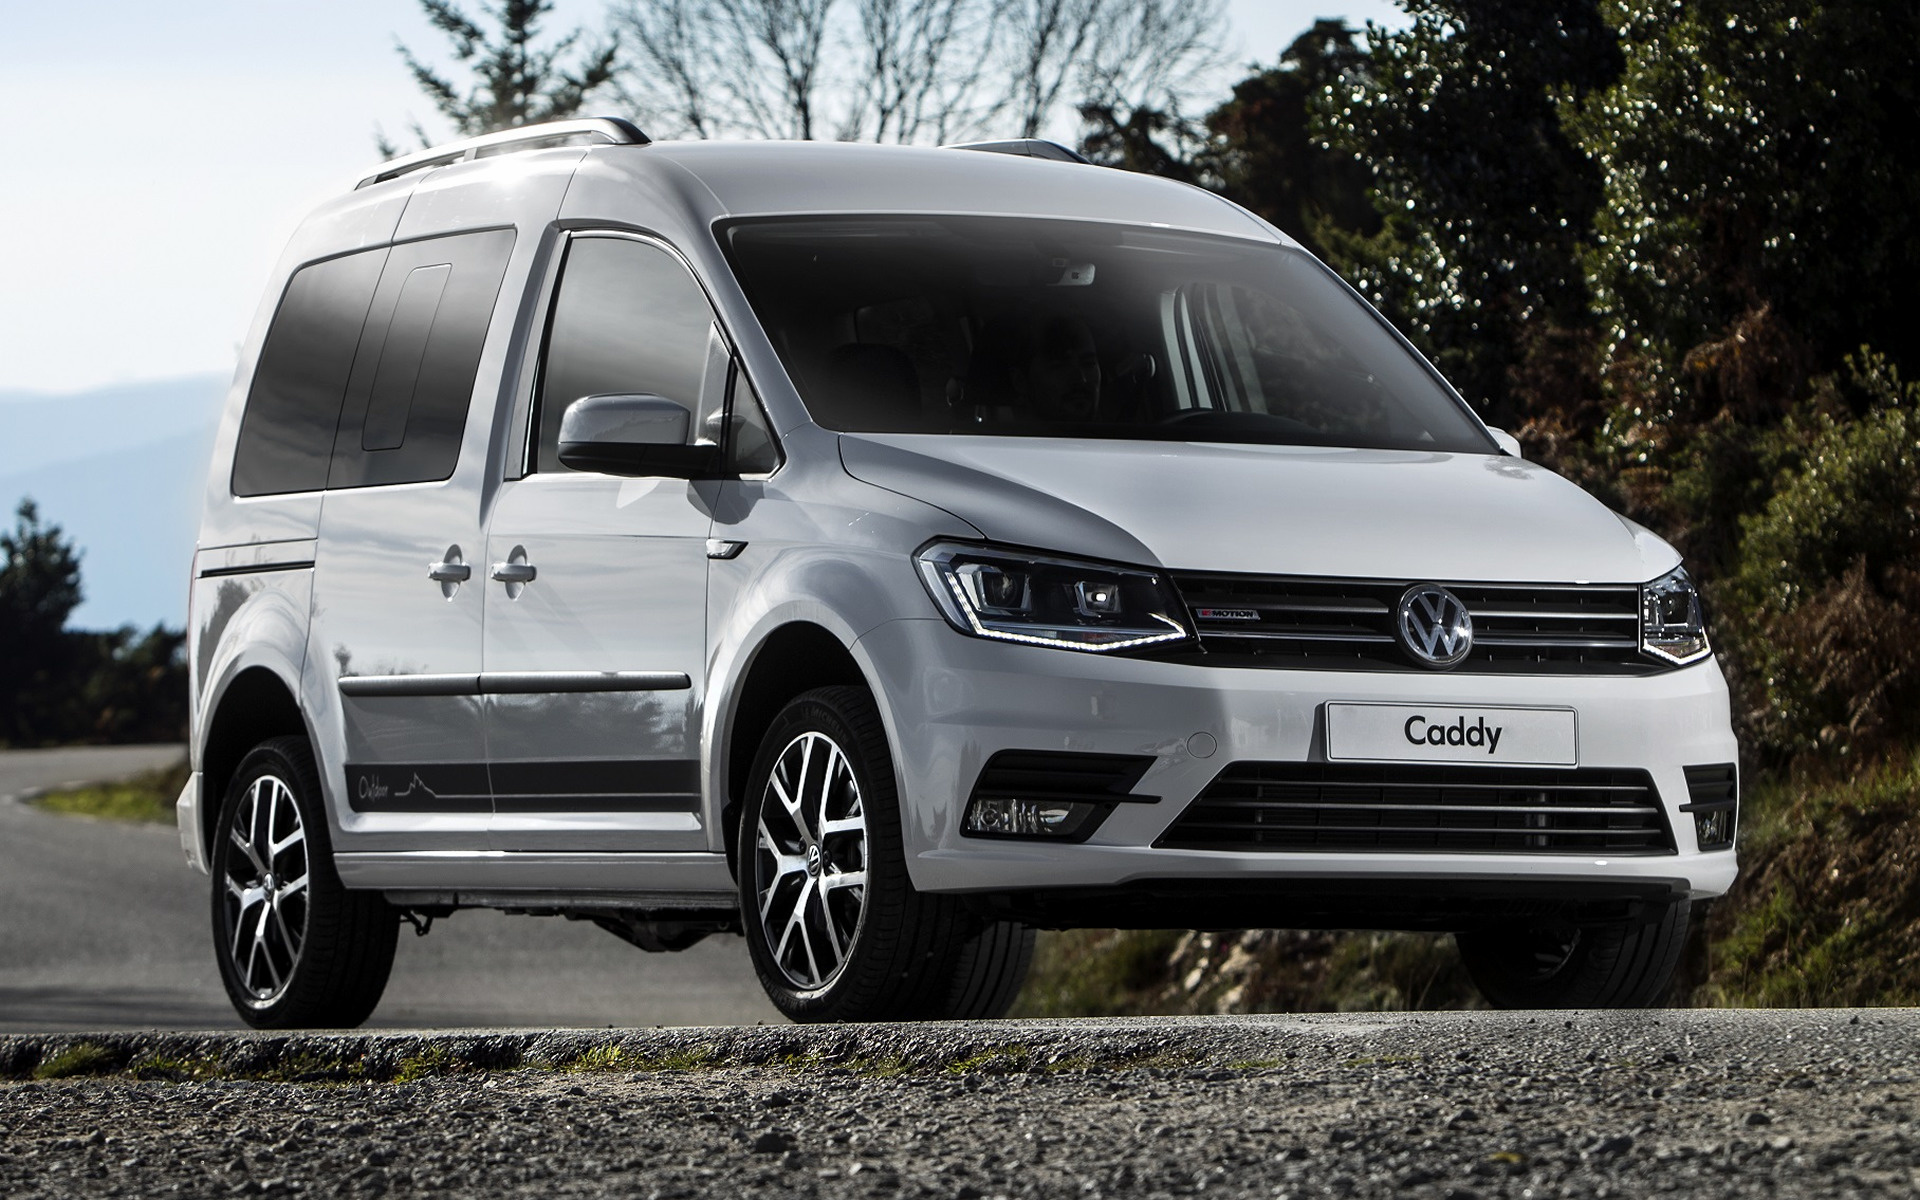 2015 Volkswagen Caddy Outdoor Wallpapers And Hd Images